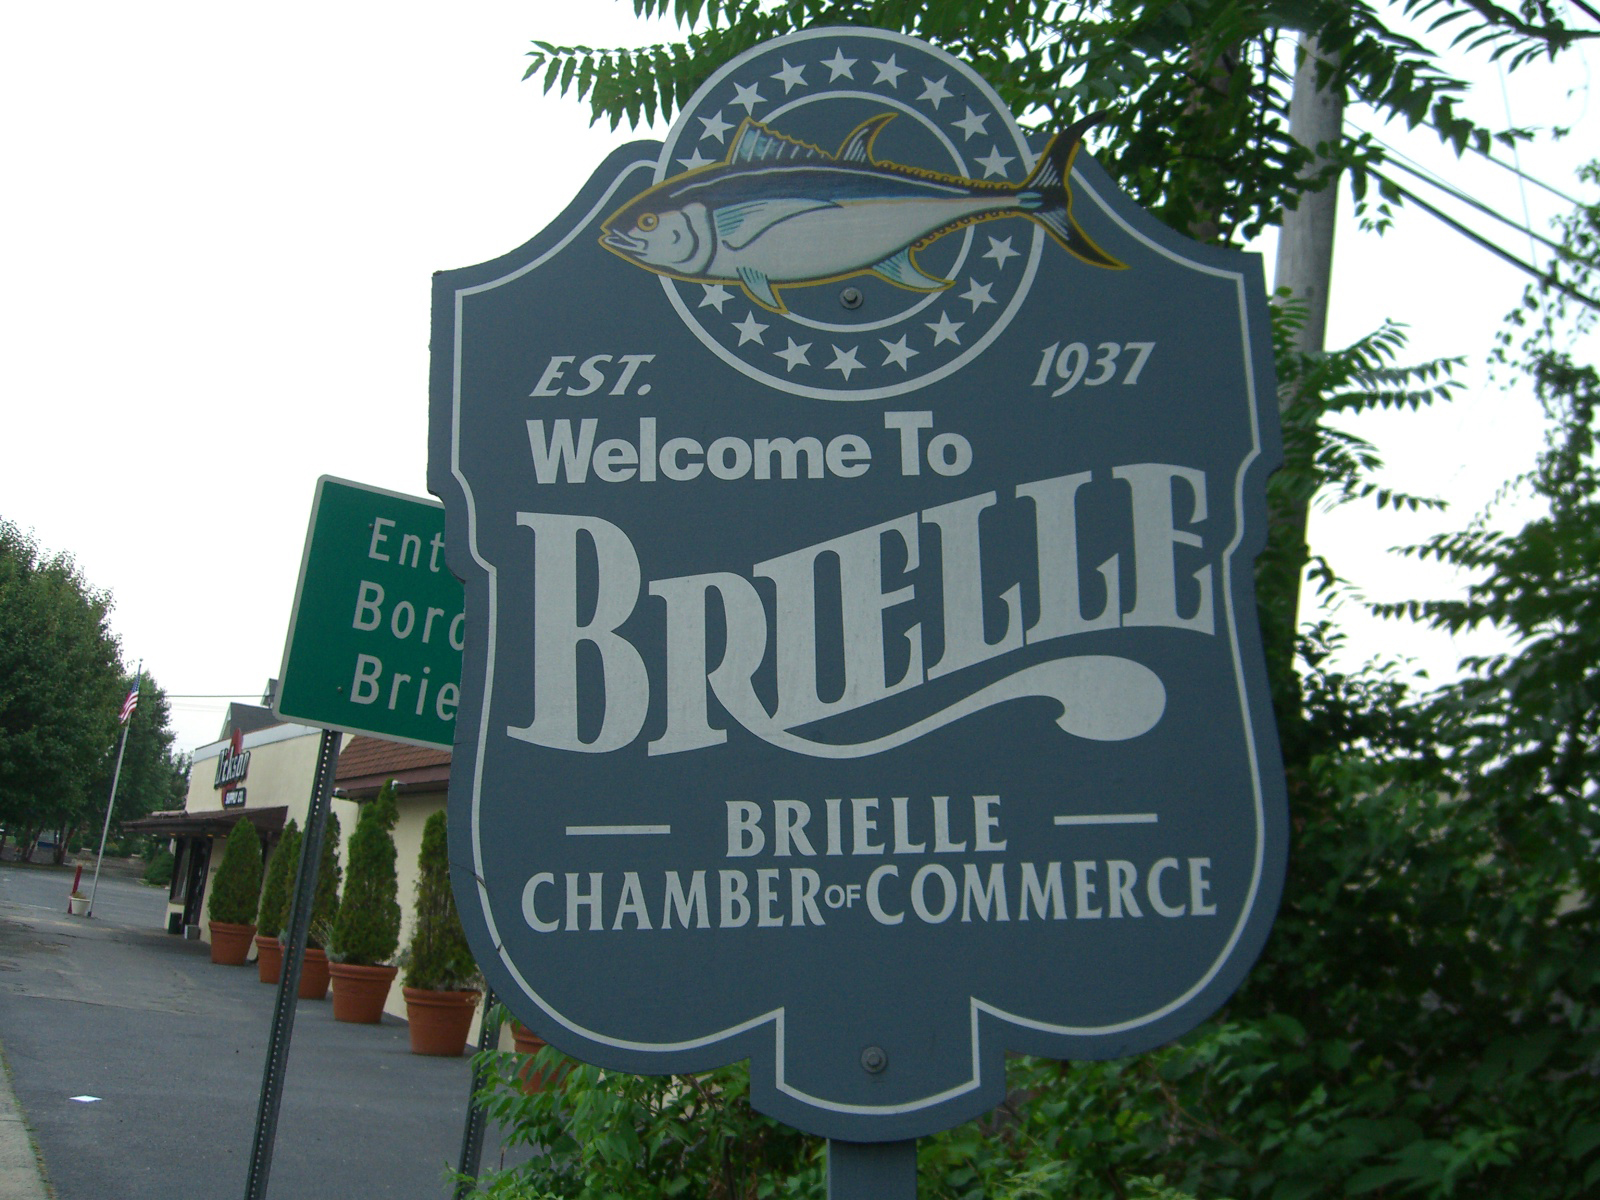 File:7.17.08BrielleByLuigiNovi1.jpg